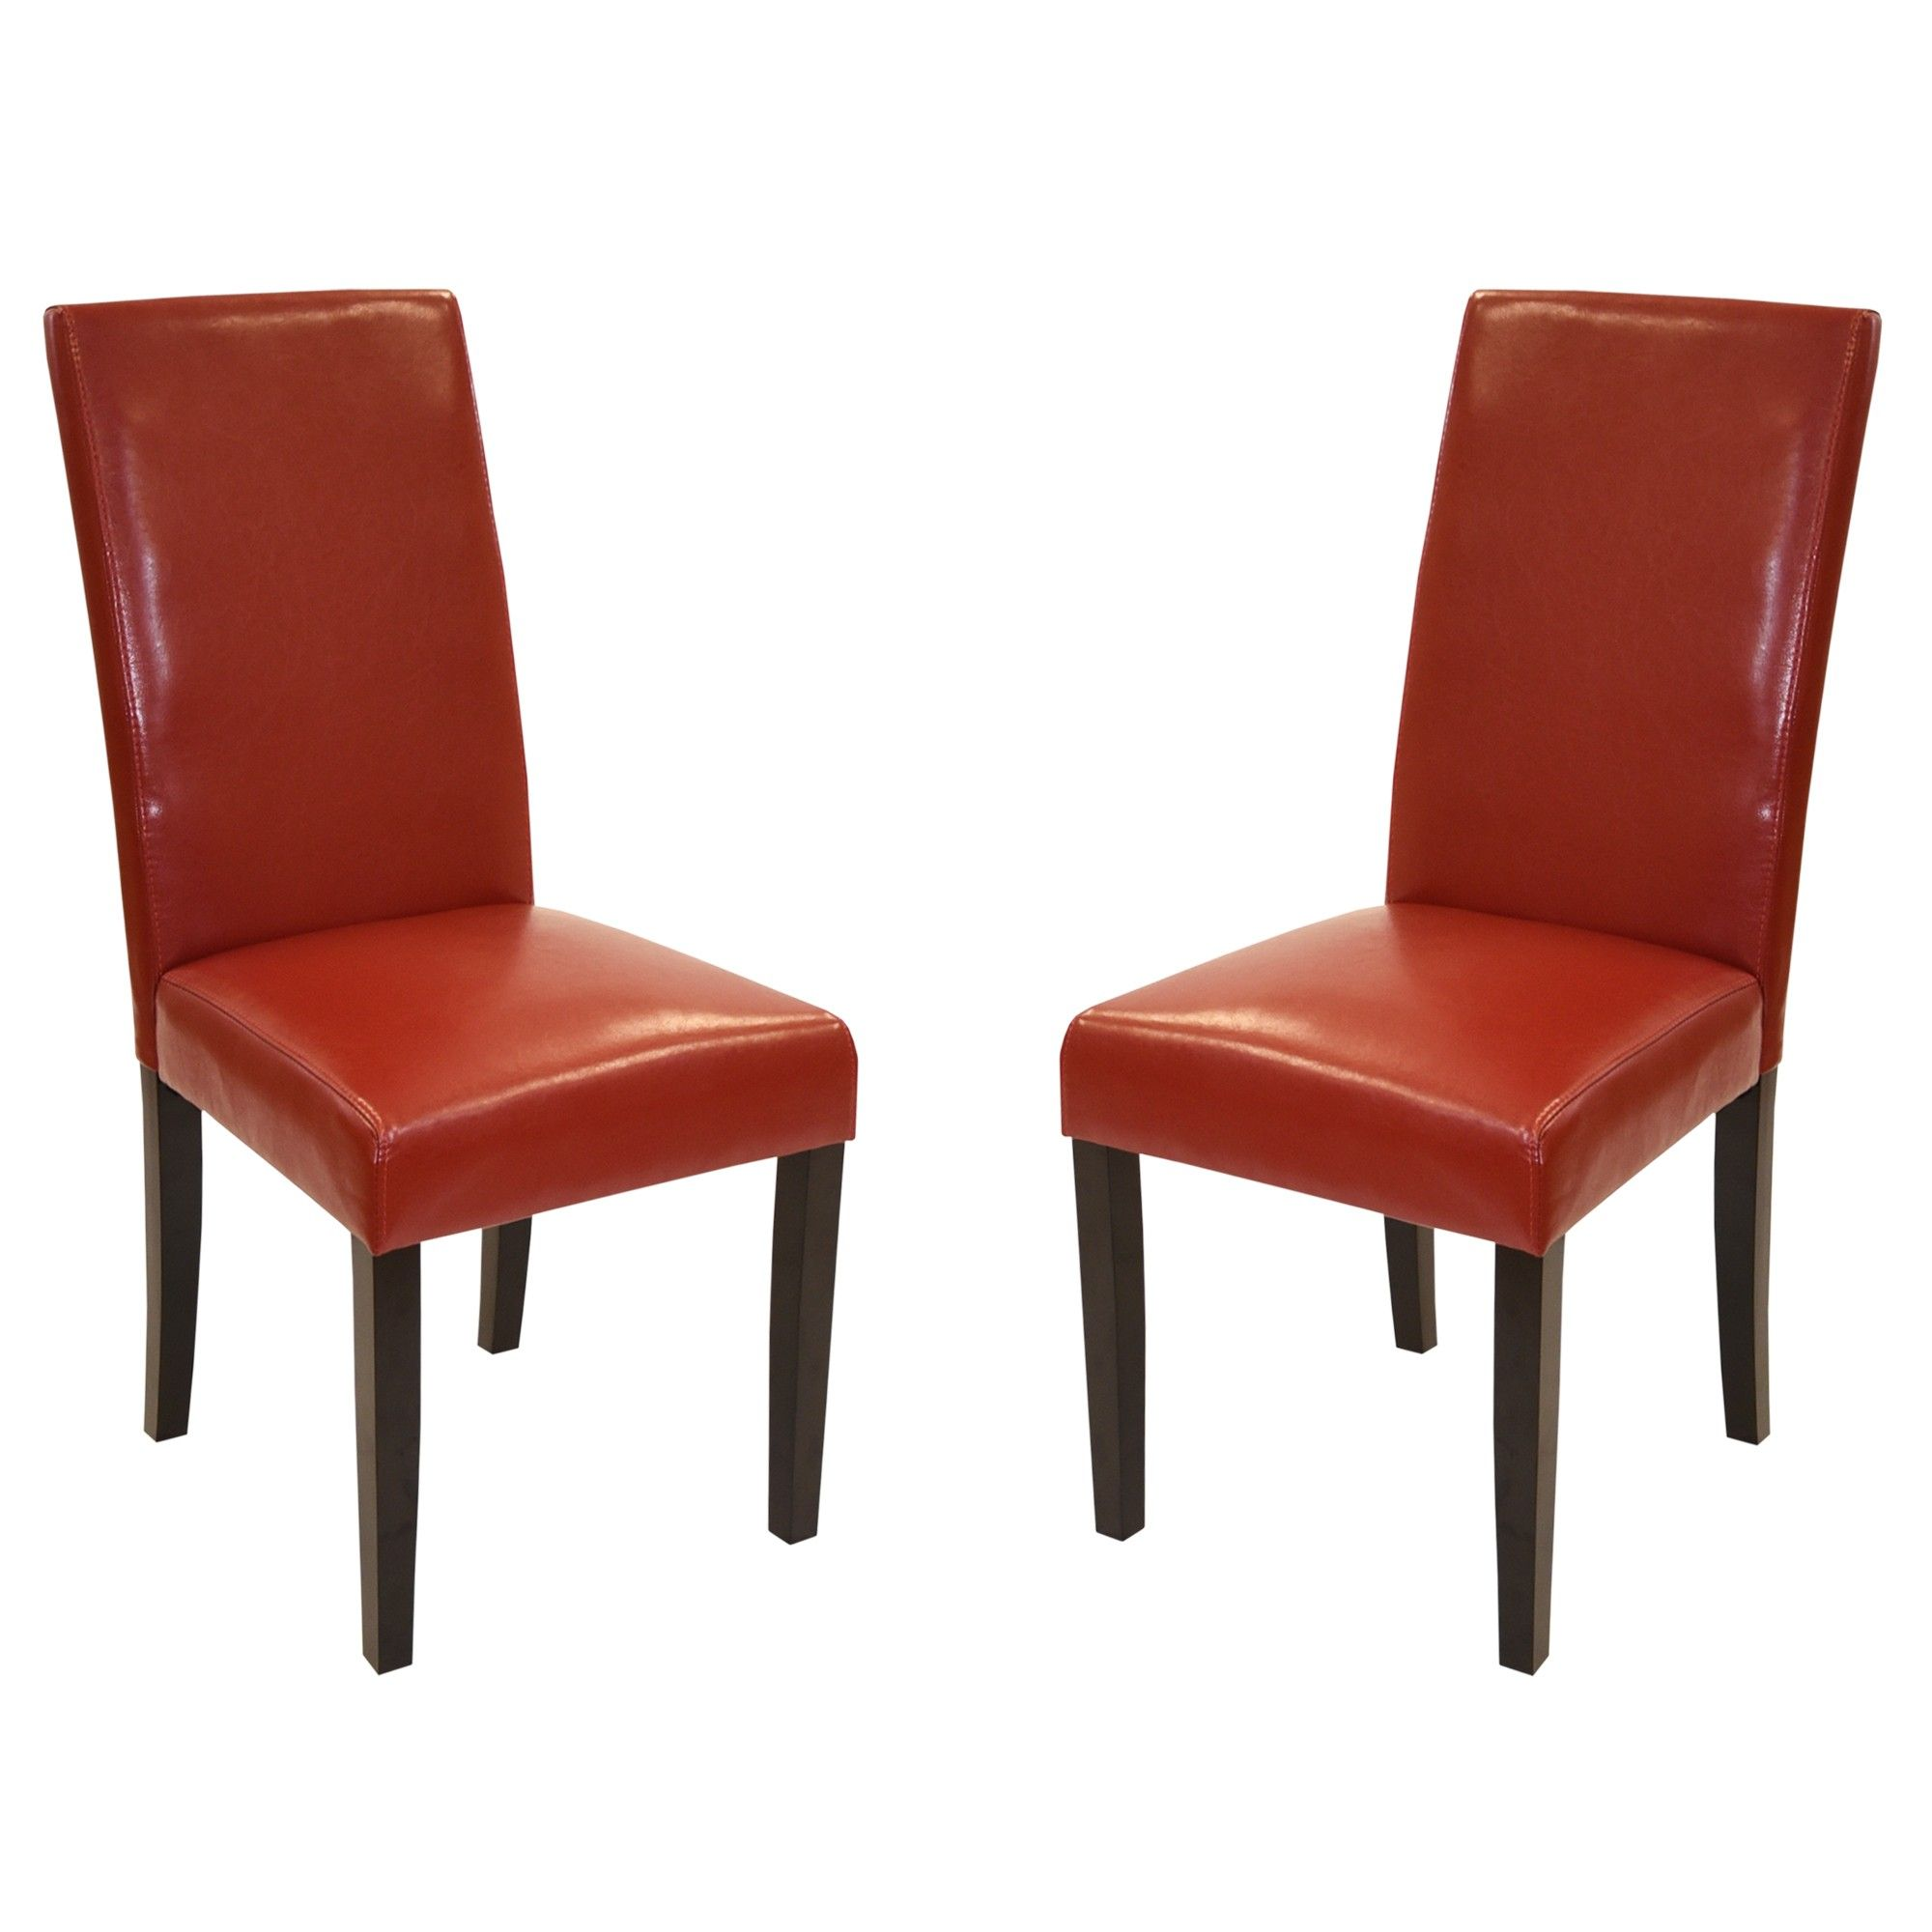 Charming Red Leather Side Chair 2 Pack